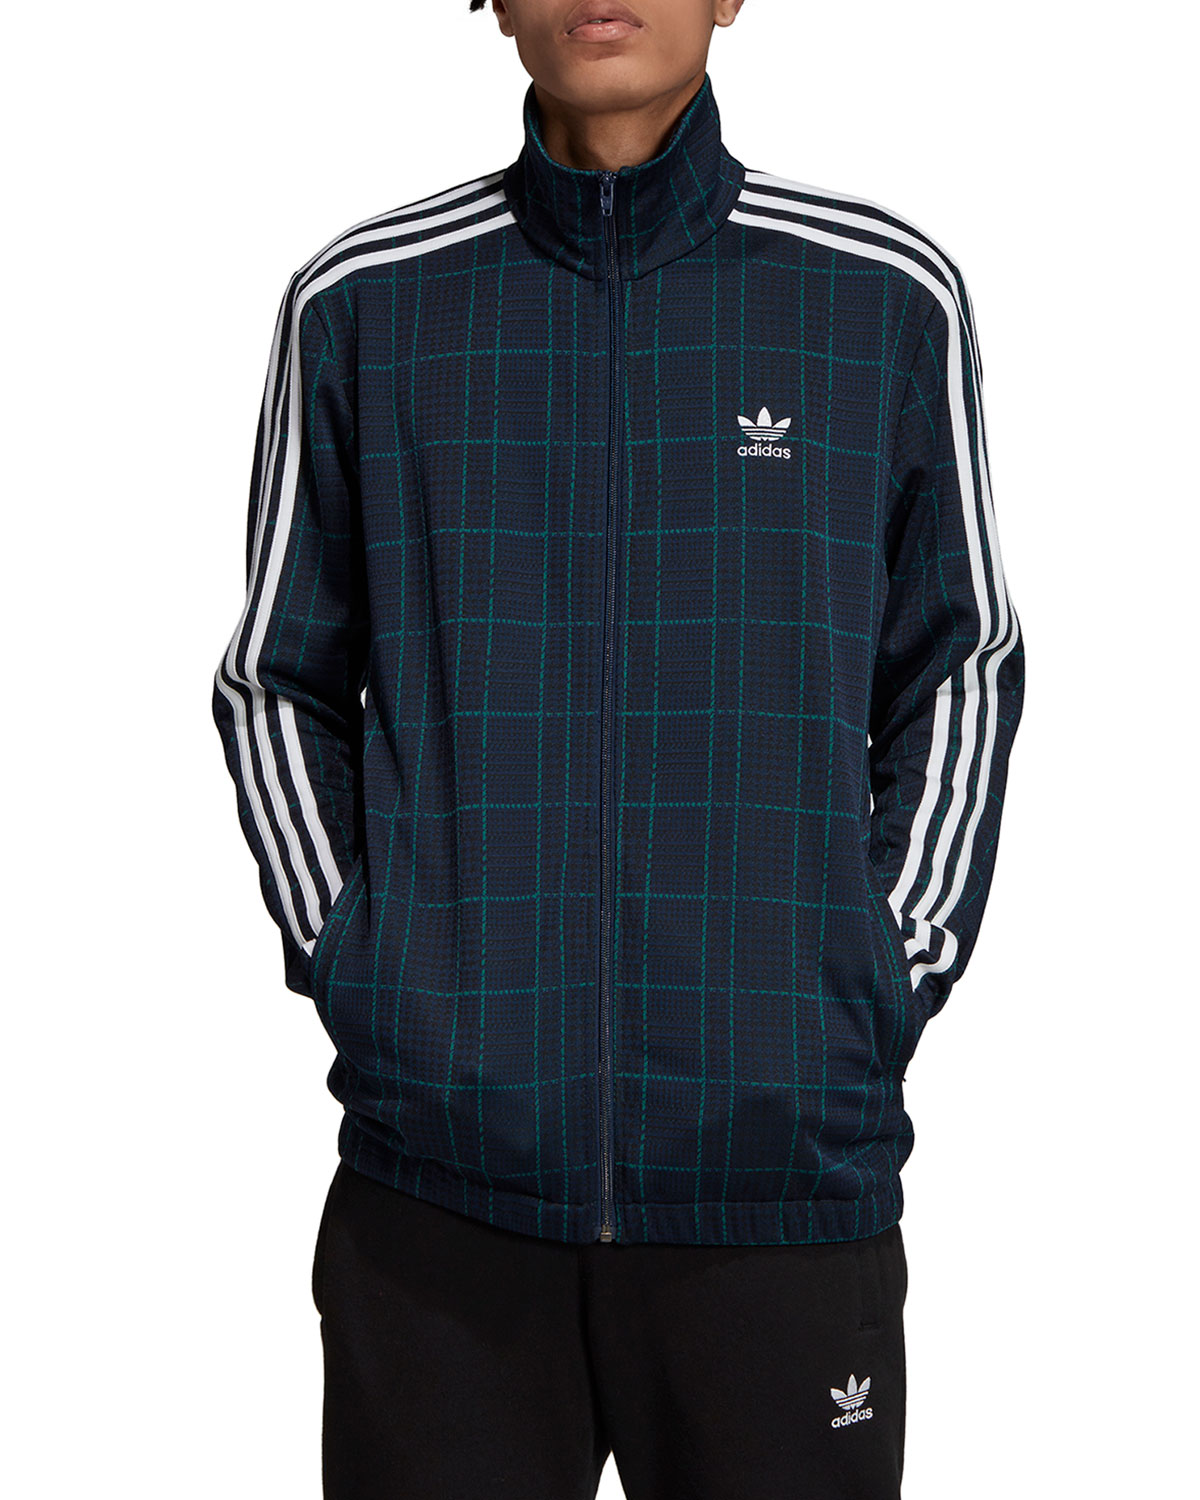 Adidas Originals Jackets MEN'S TARTAN PLAID 3-STRIPES TRACK JACKET